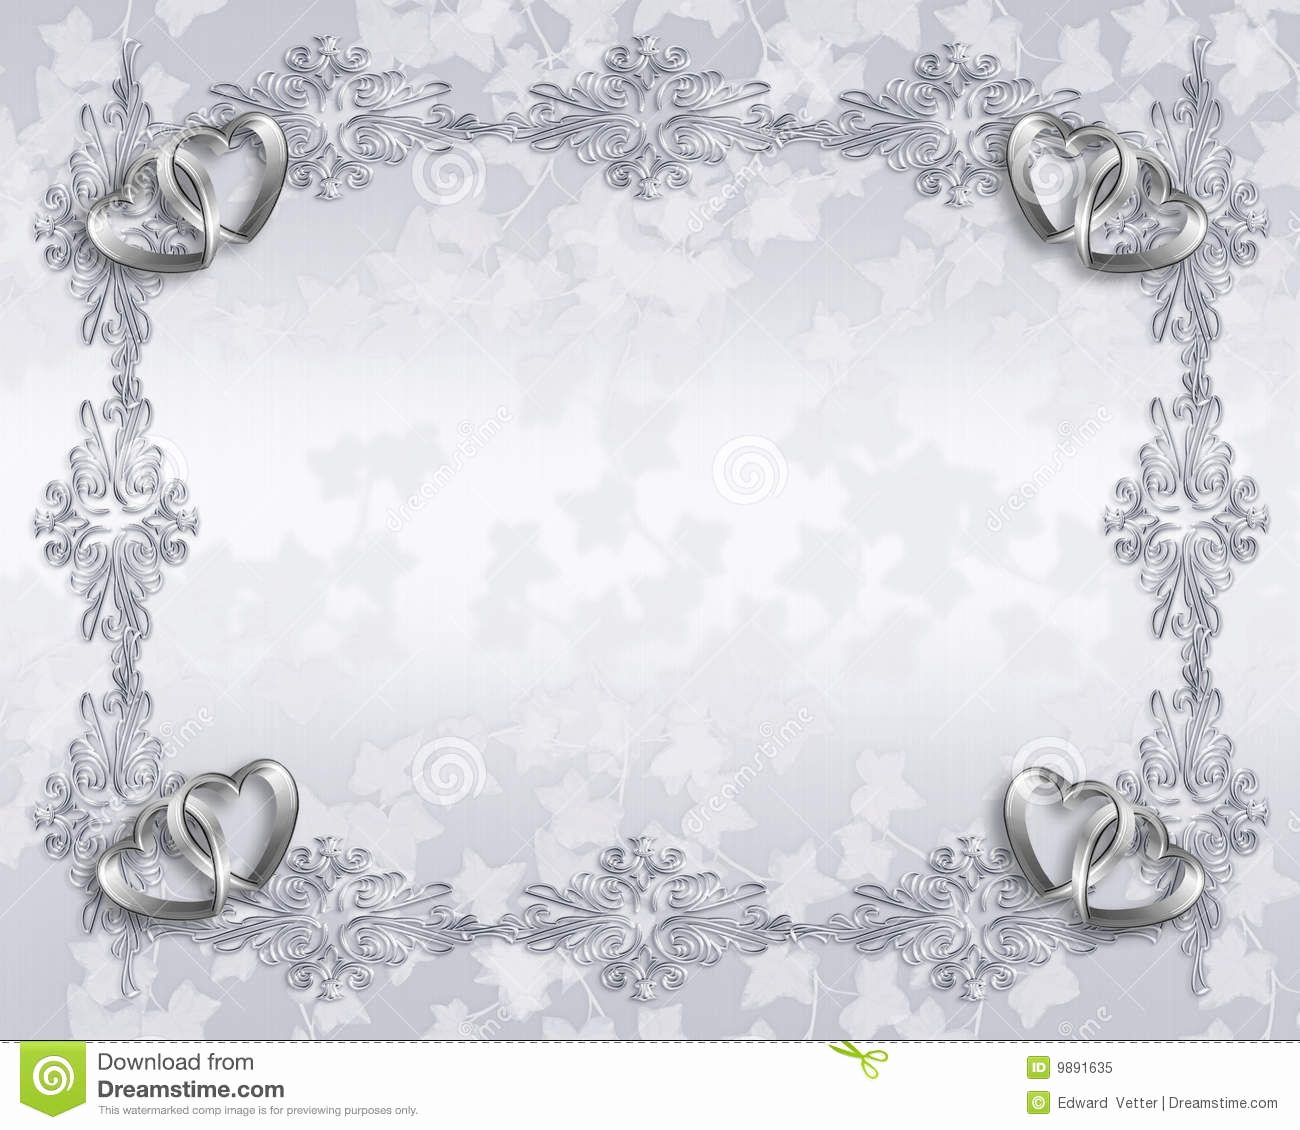 Wedding Invitation Frame Ideas Beautiful Pin by Margaret Morrow On Frames for Cards